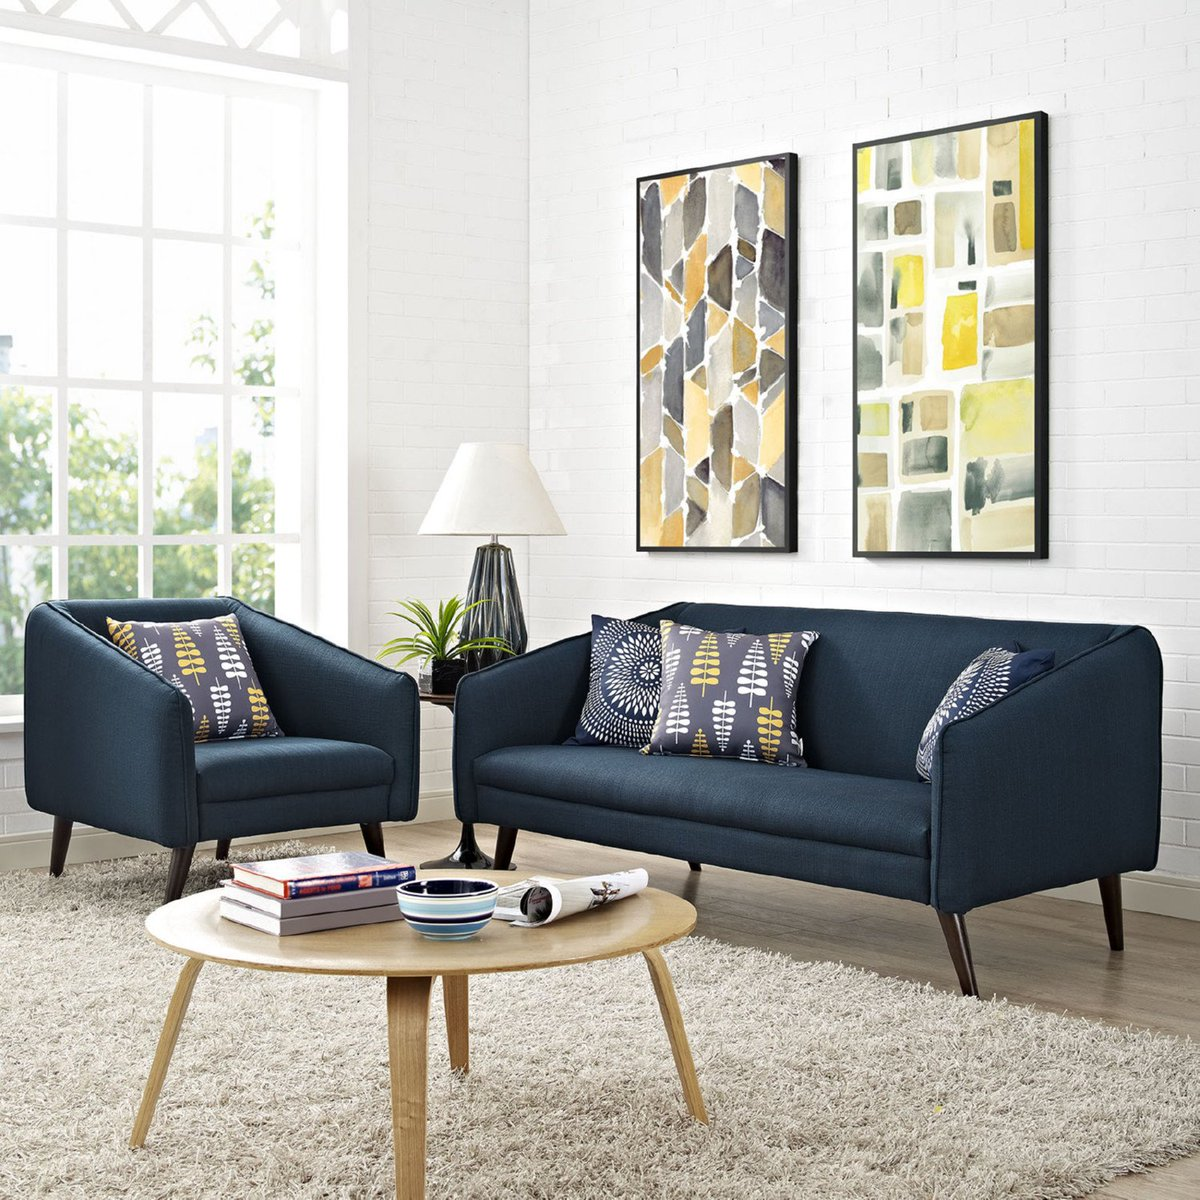 Foam padding and a rich mid century style https www modode com p slide sofa in azure sofas and sectionals 6371 sofa midcentury modern